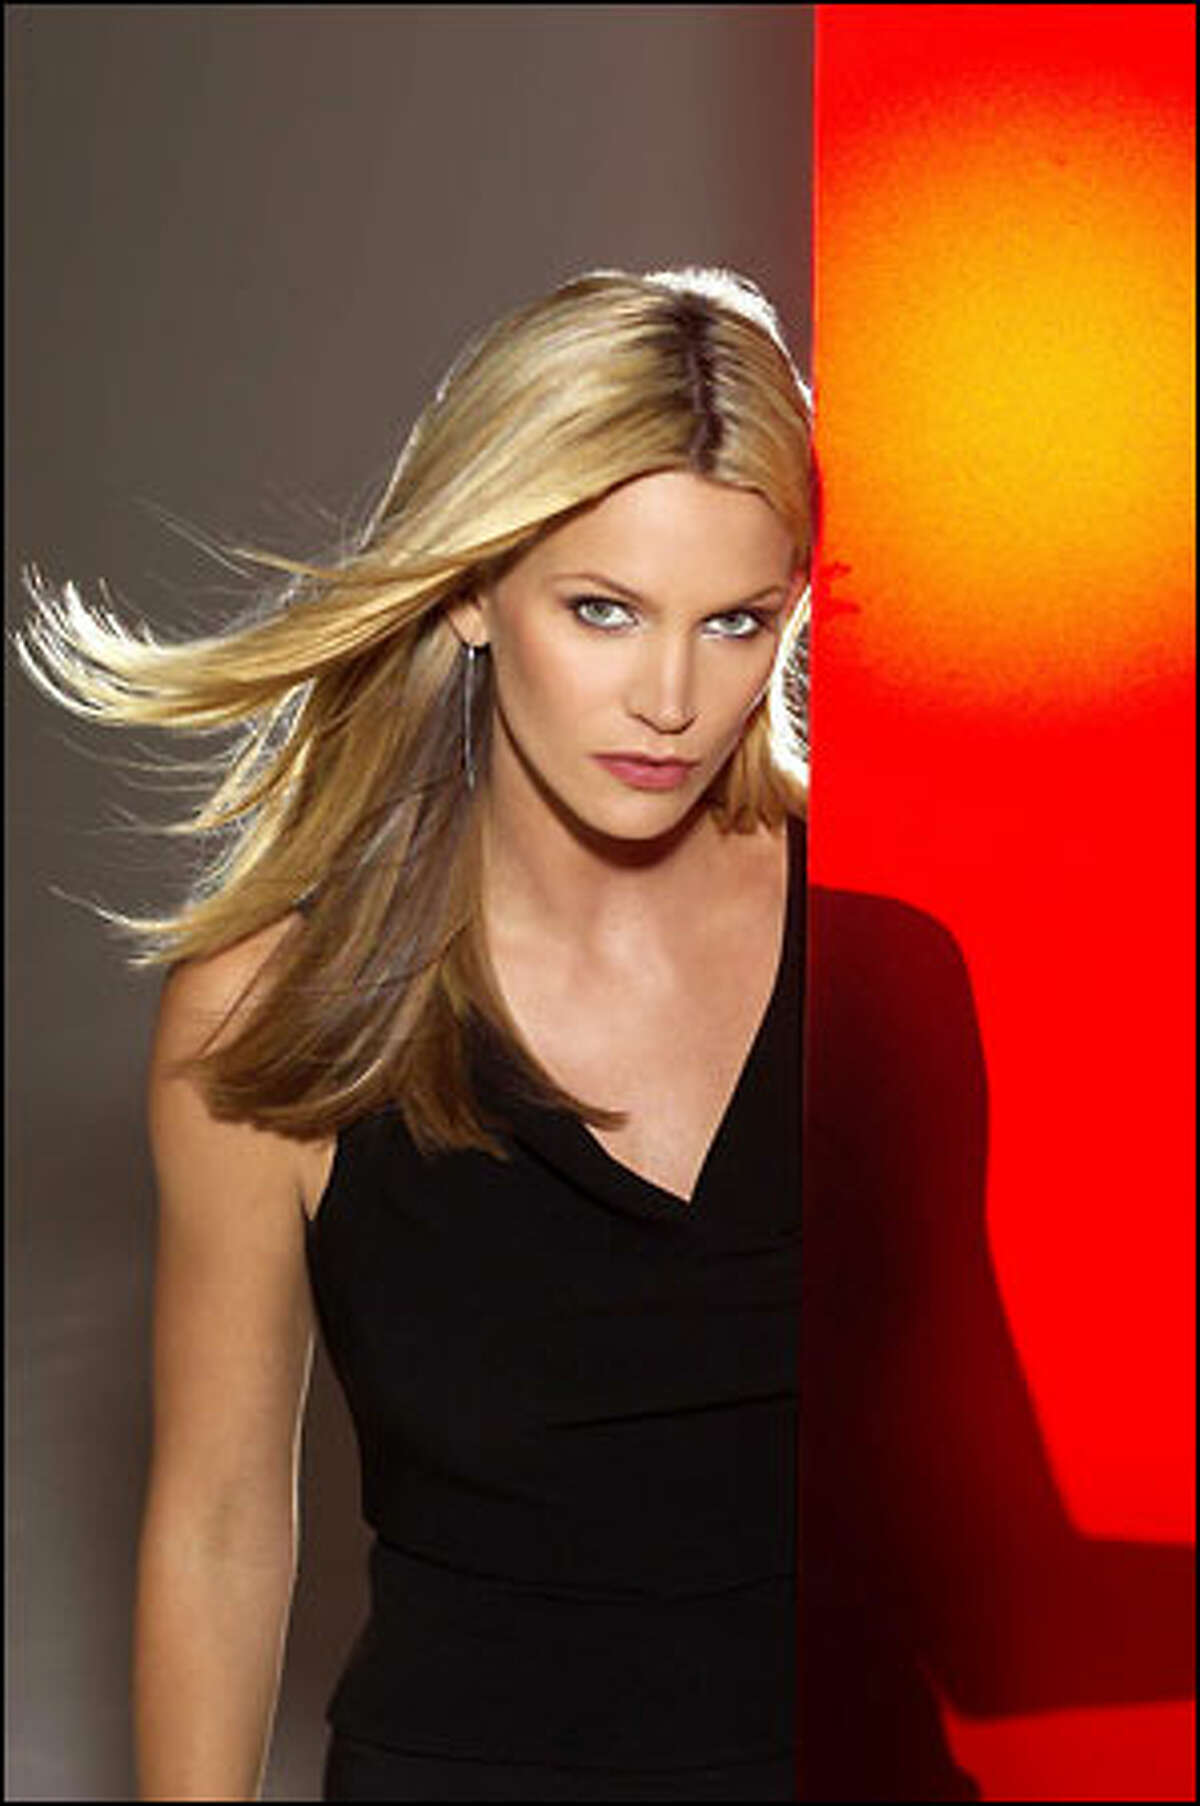 Natasha Henstridge plays Cassie, an elegant career con artist who ended up behind bars after a scheme backfired. The government gave her a choice: lead an elite trio of